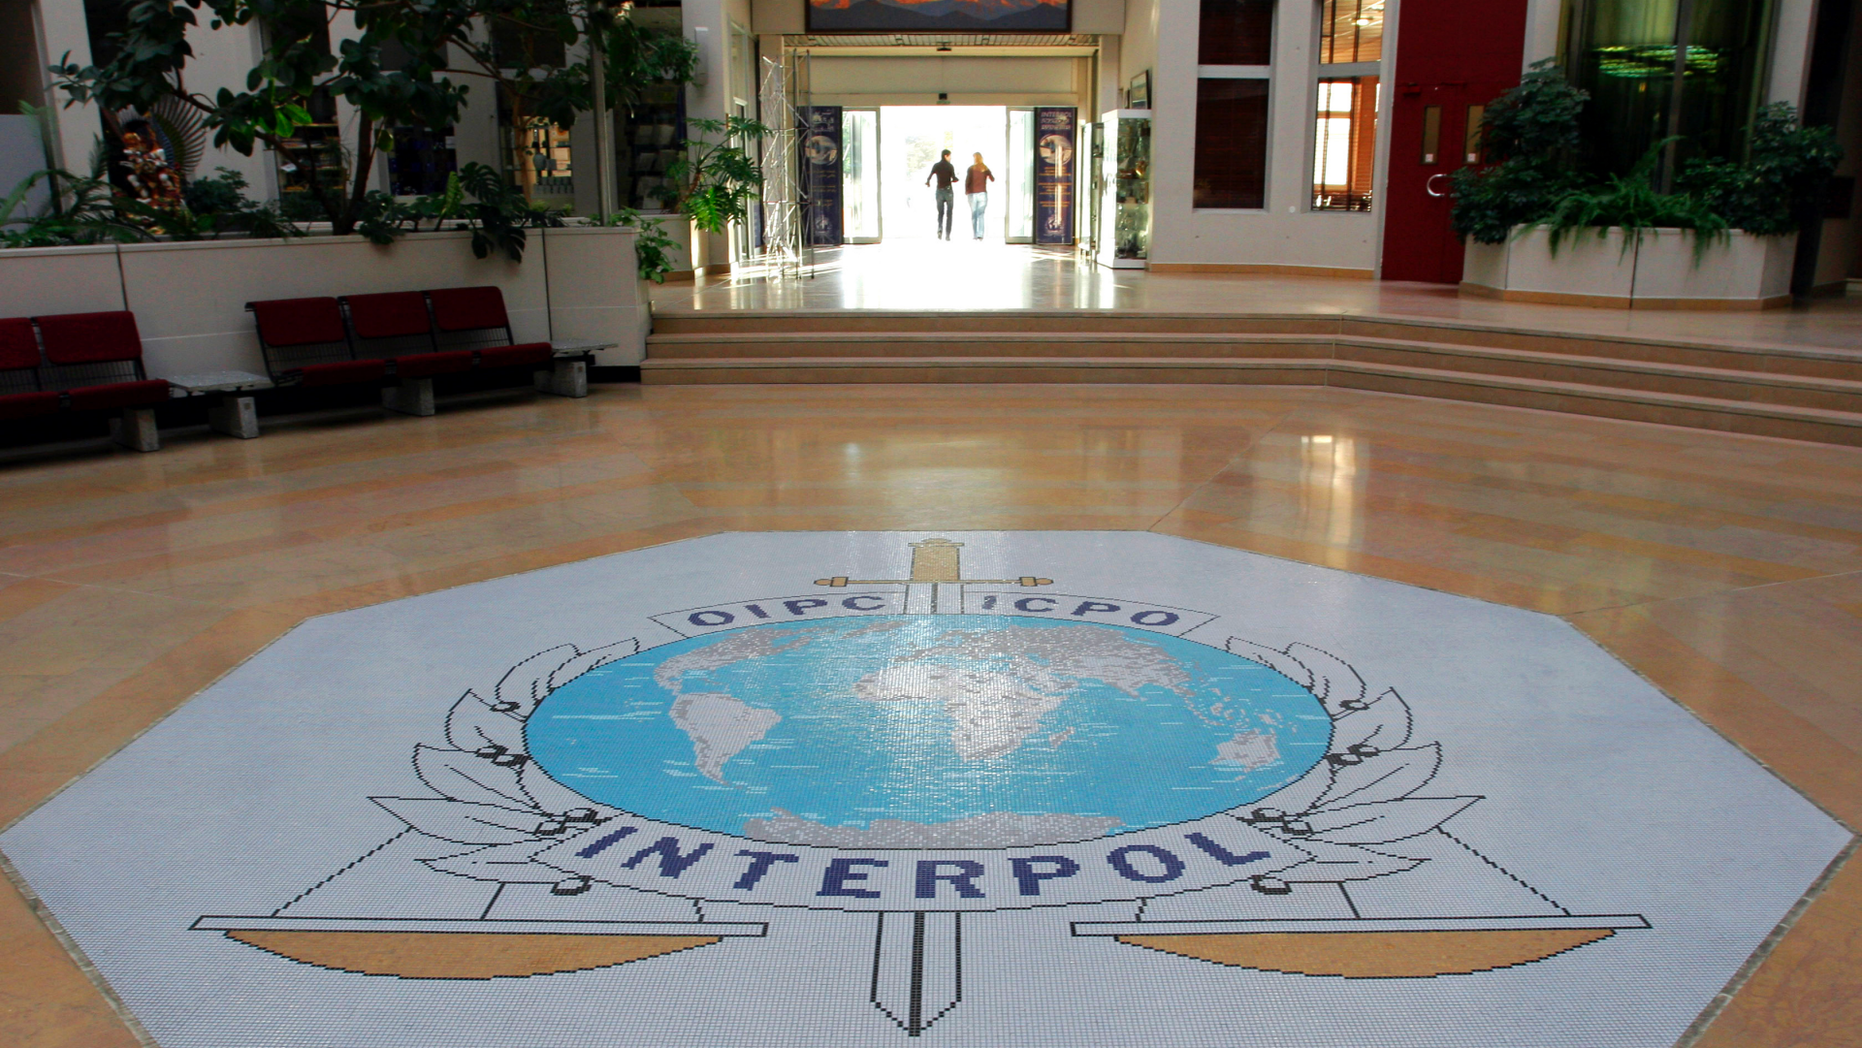 FILE - This Oct.16, 2007 file photo shows the entrance hall of Interpol's headquarters in Lyon, central France. (AP Photo/Laurent Cipriani, File)